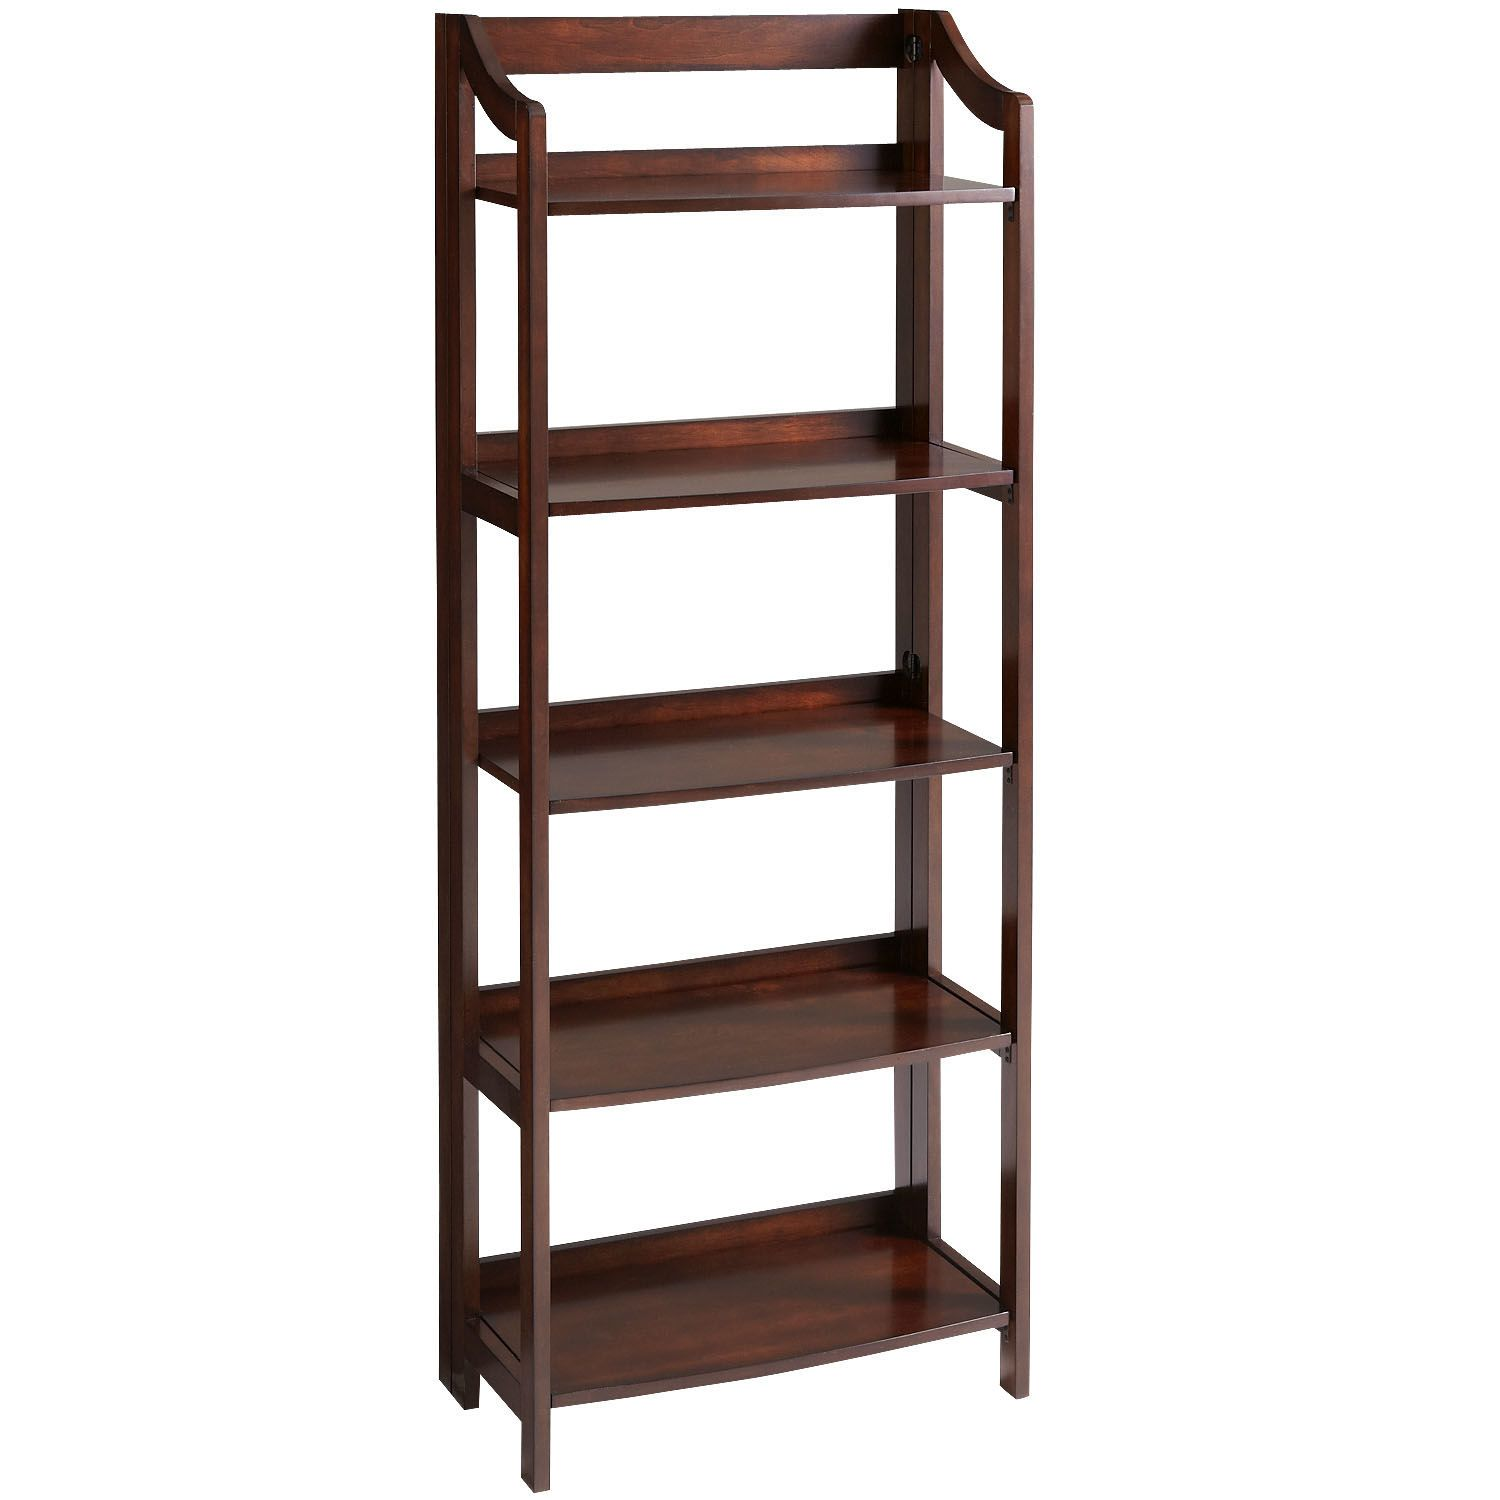 Clifton Tobacco Brown Tall Folding Shelf For The Home Pier 1